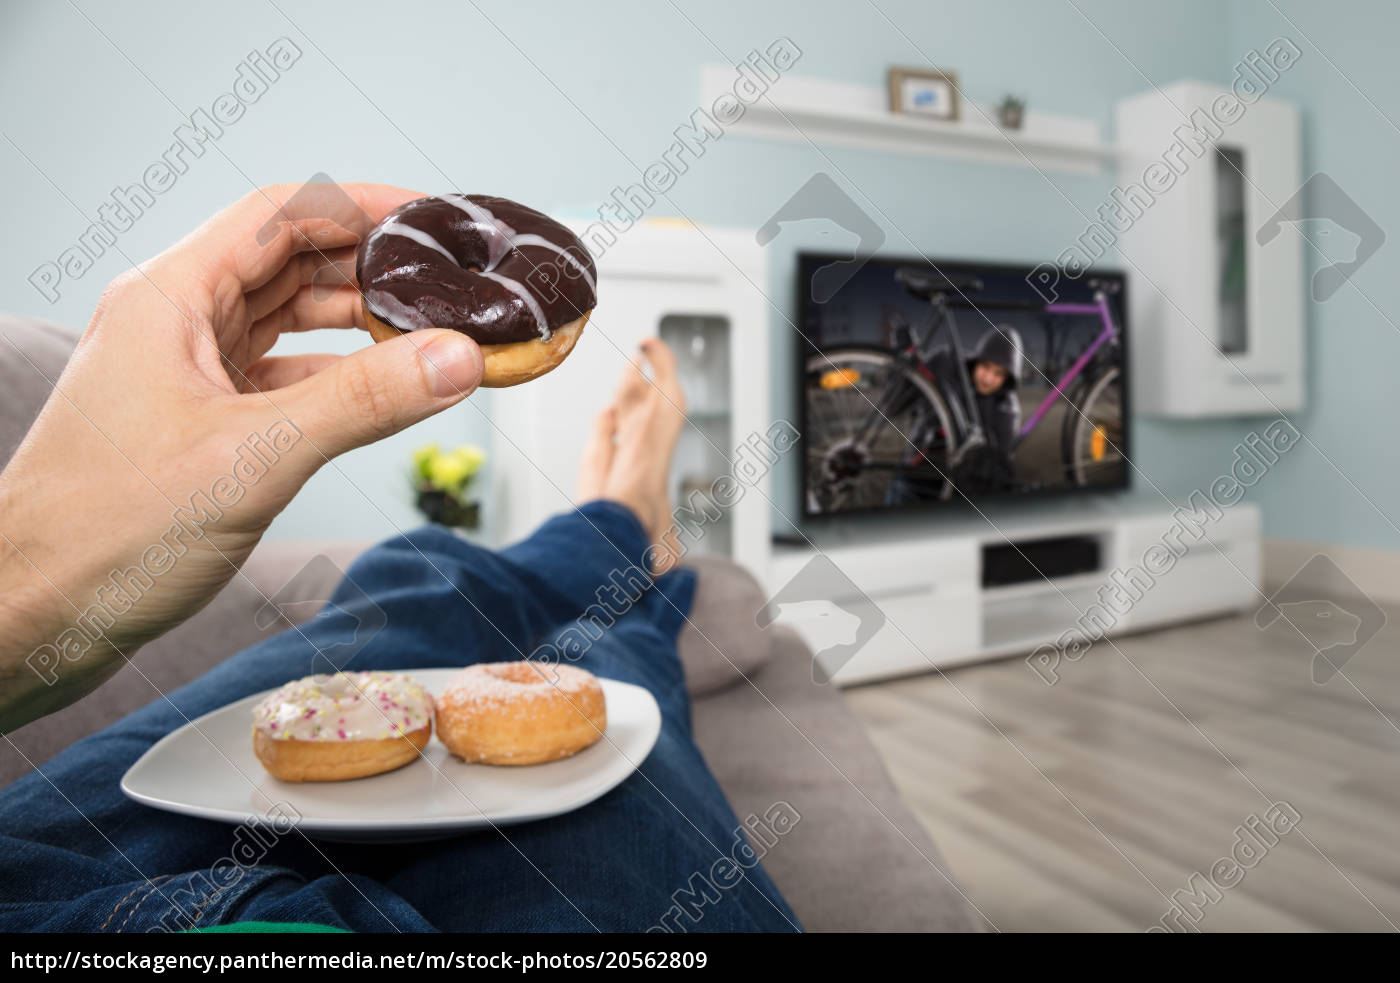 person, eating, donut, while, watching, television - 20562809